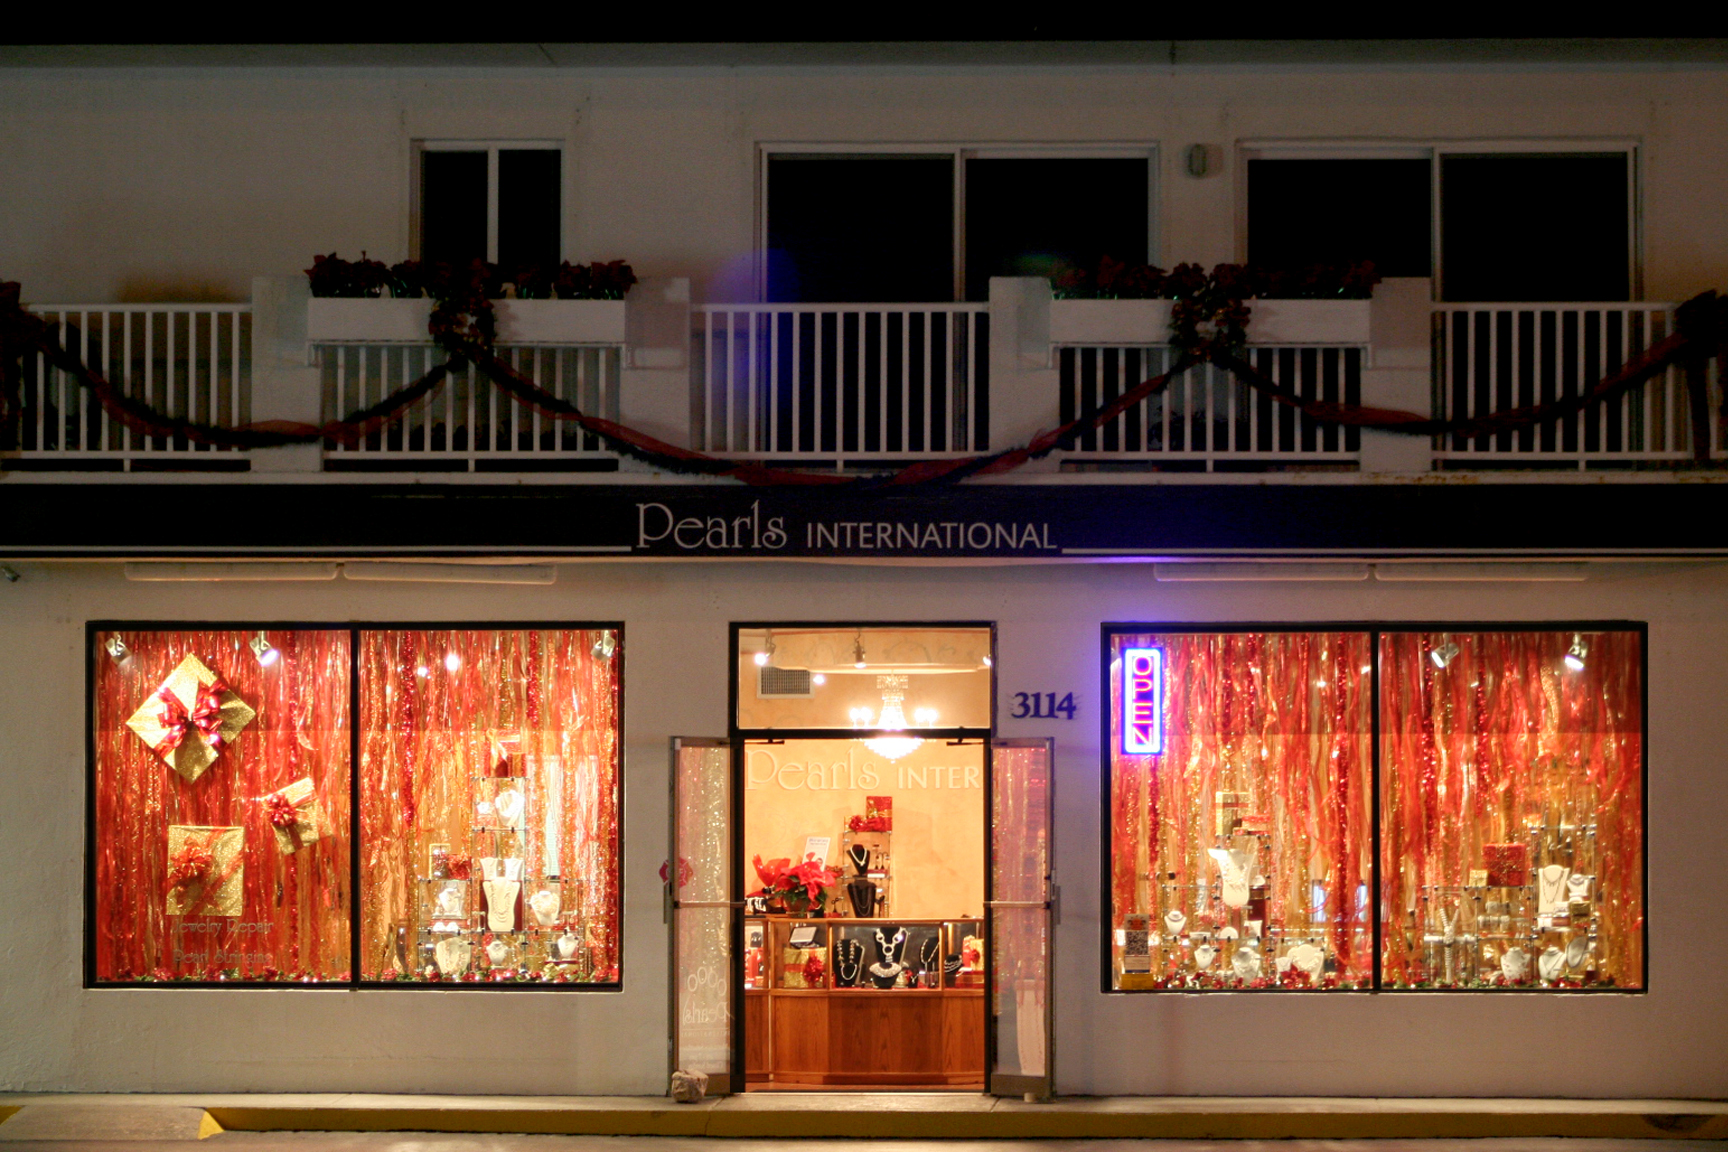 Pearls International at Night